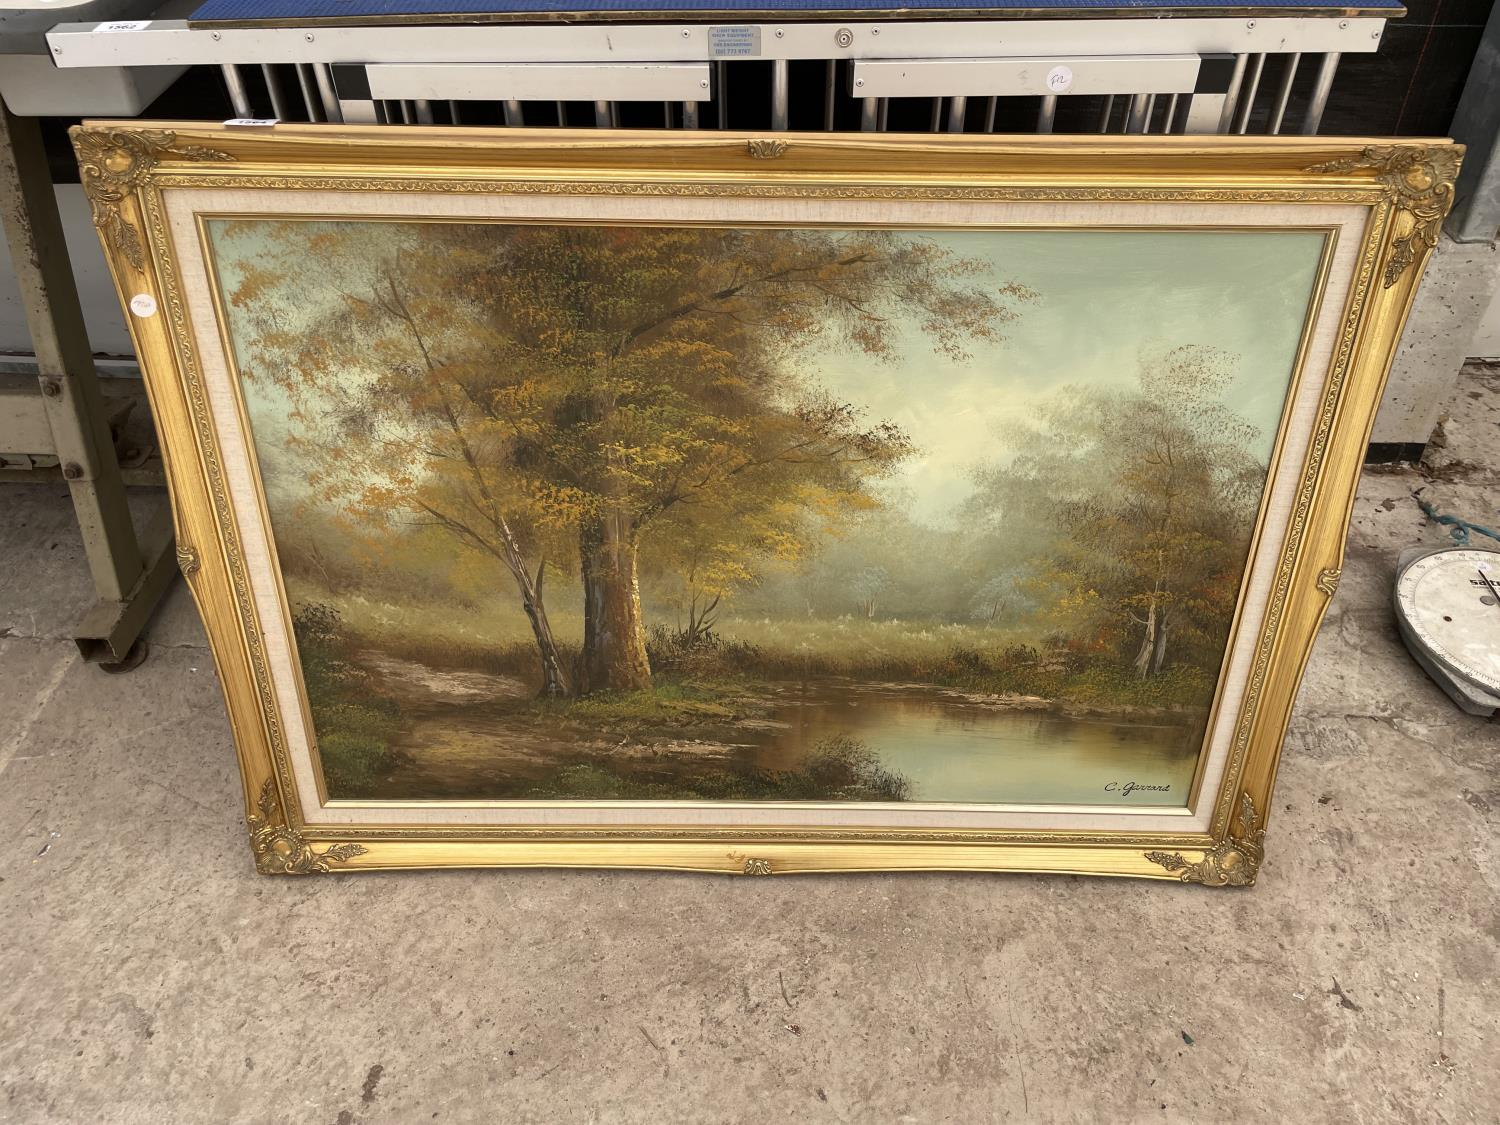 A GILT FRAMED PRINT ON CANVAS SIGNED IN THE BOTTOM RIGHT HAND CORNER - Image 2 of 4